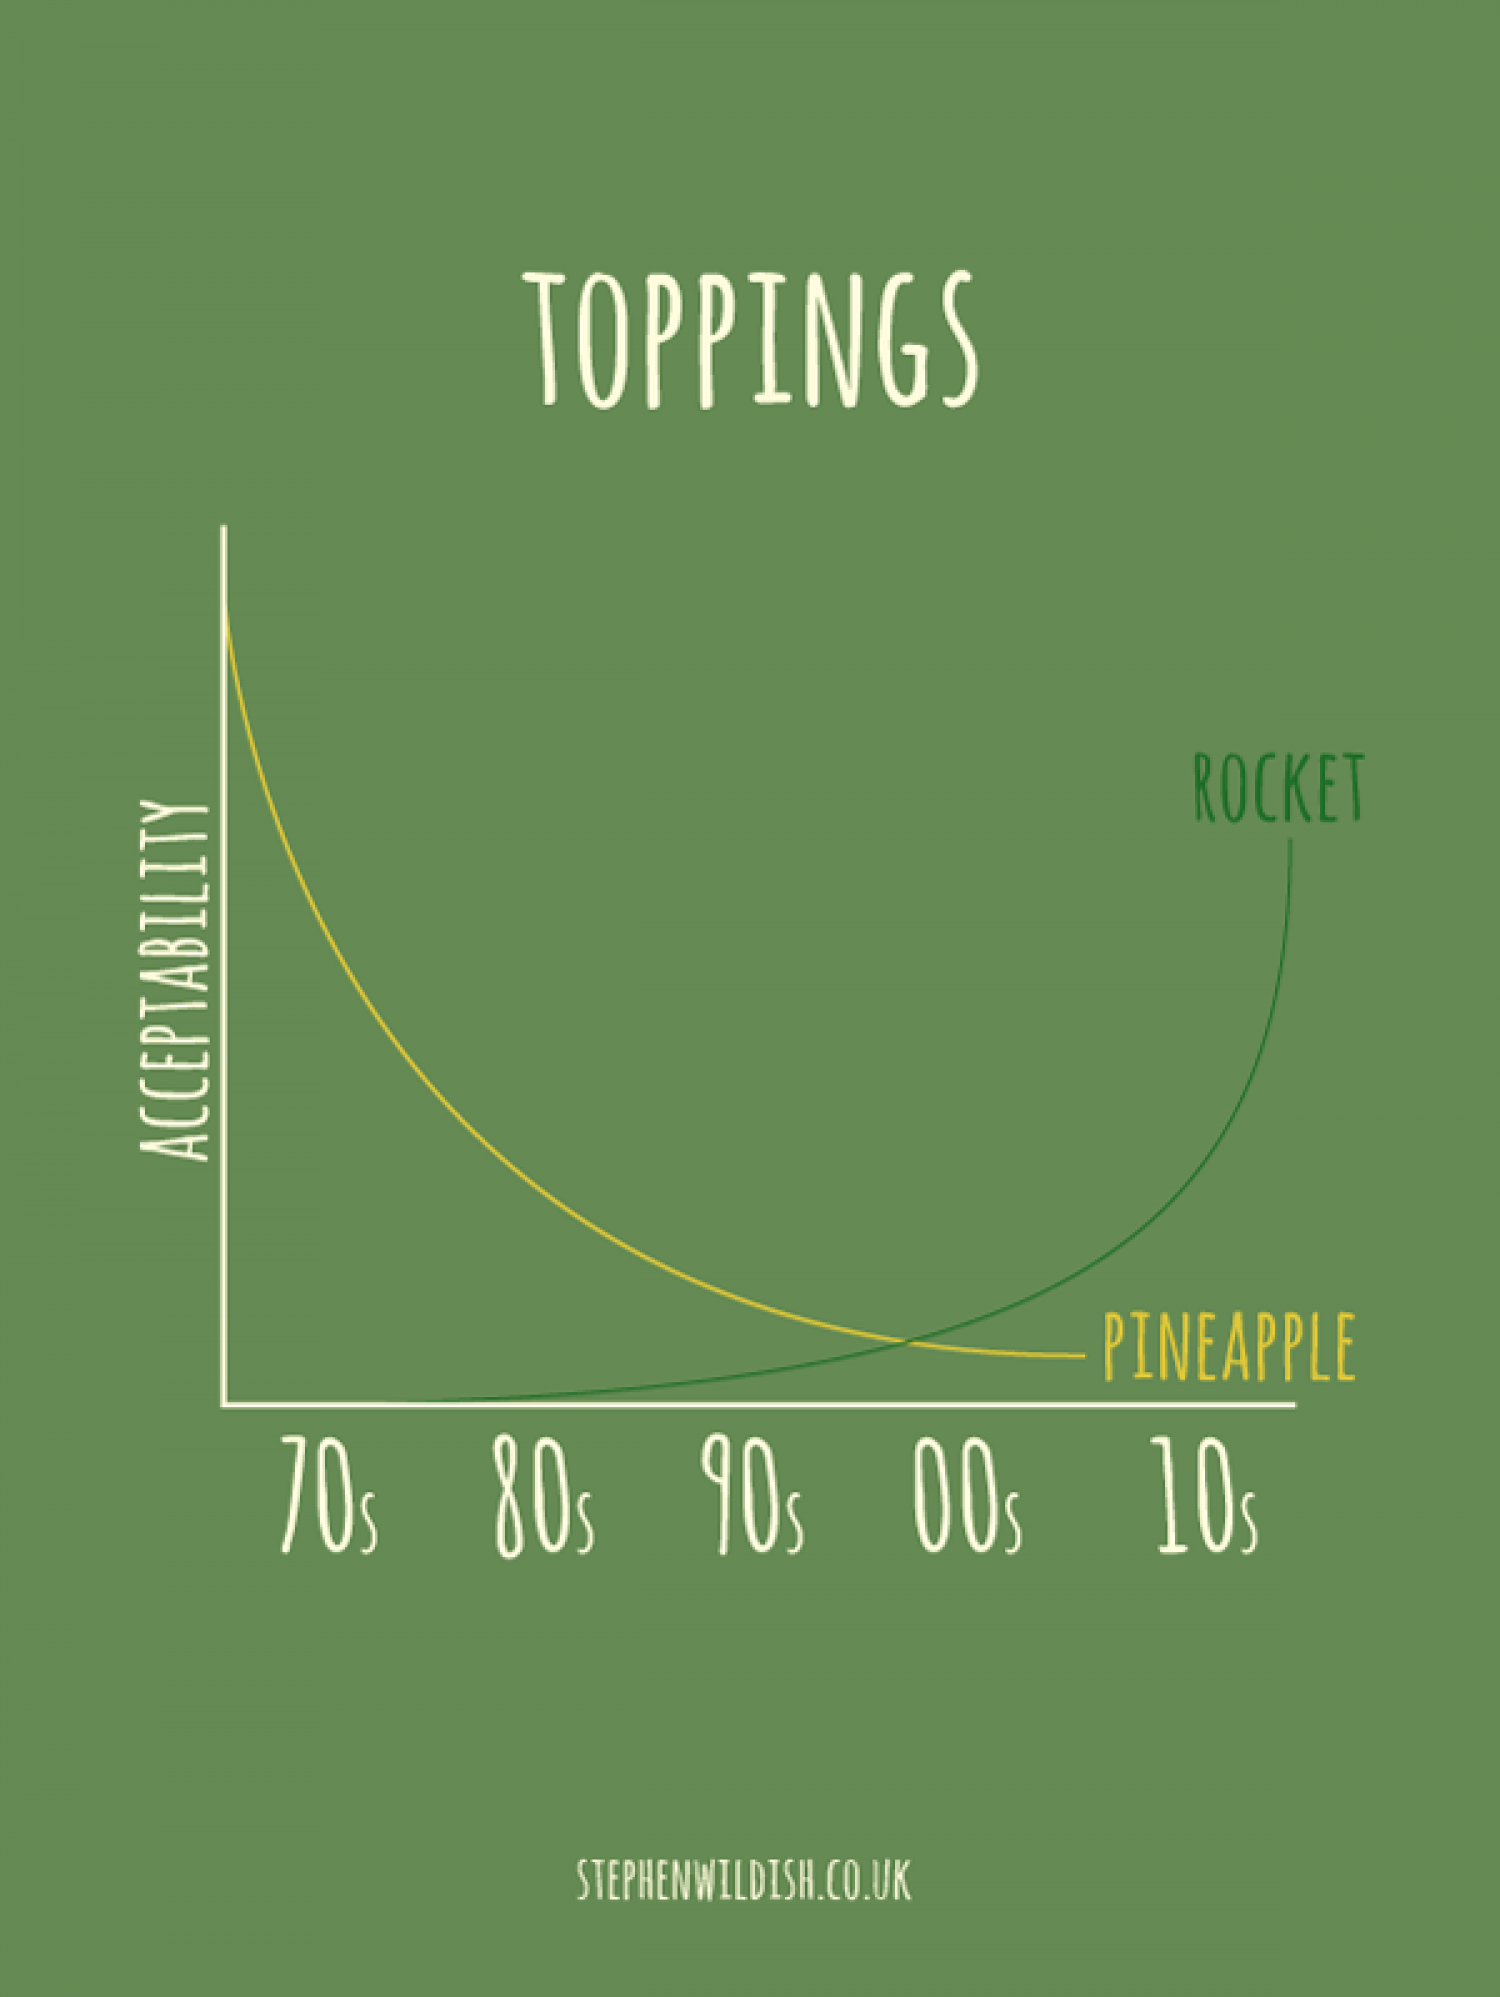 Toppings Infographic